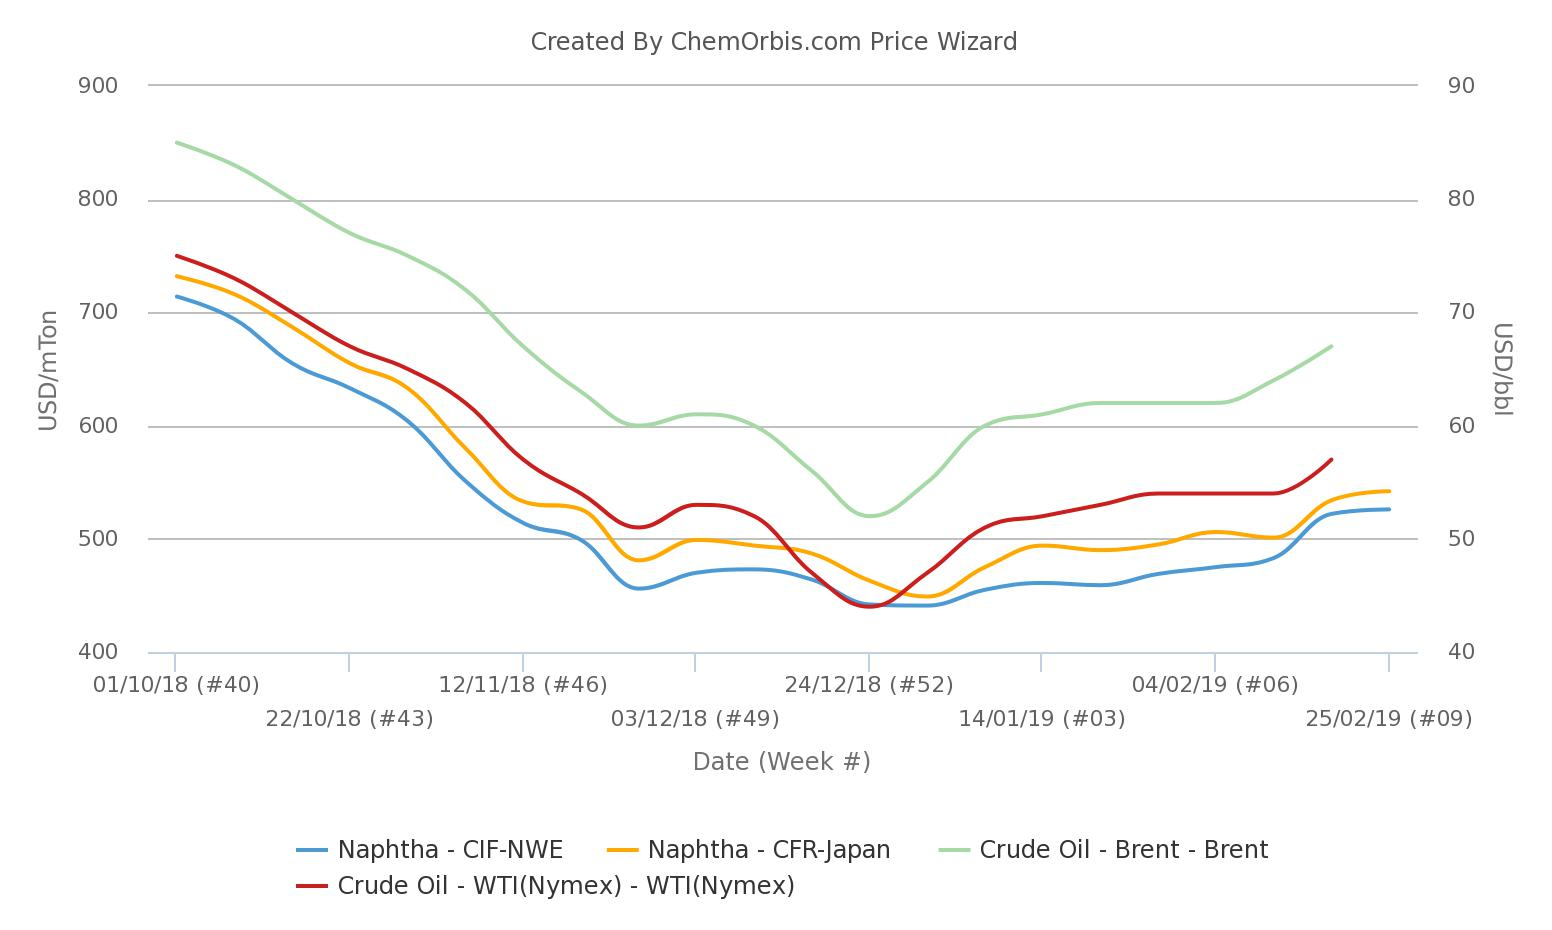 Spot naphtha prices rise to 3-month high in Asia, Europe